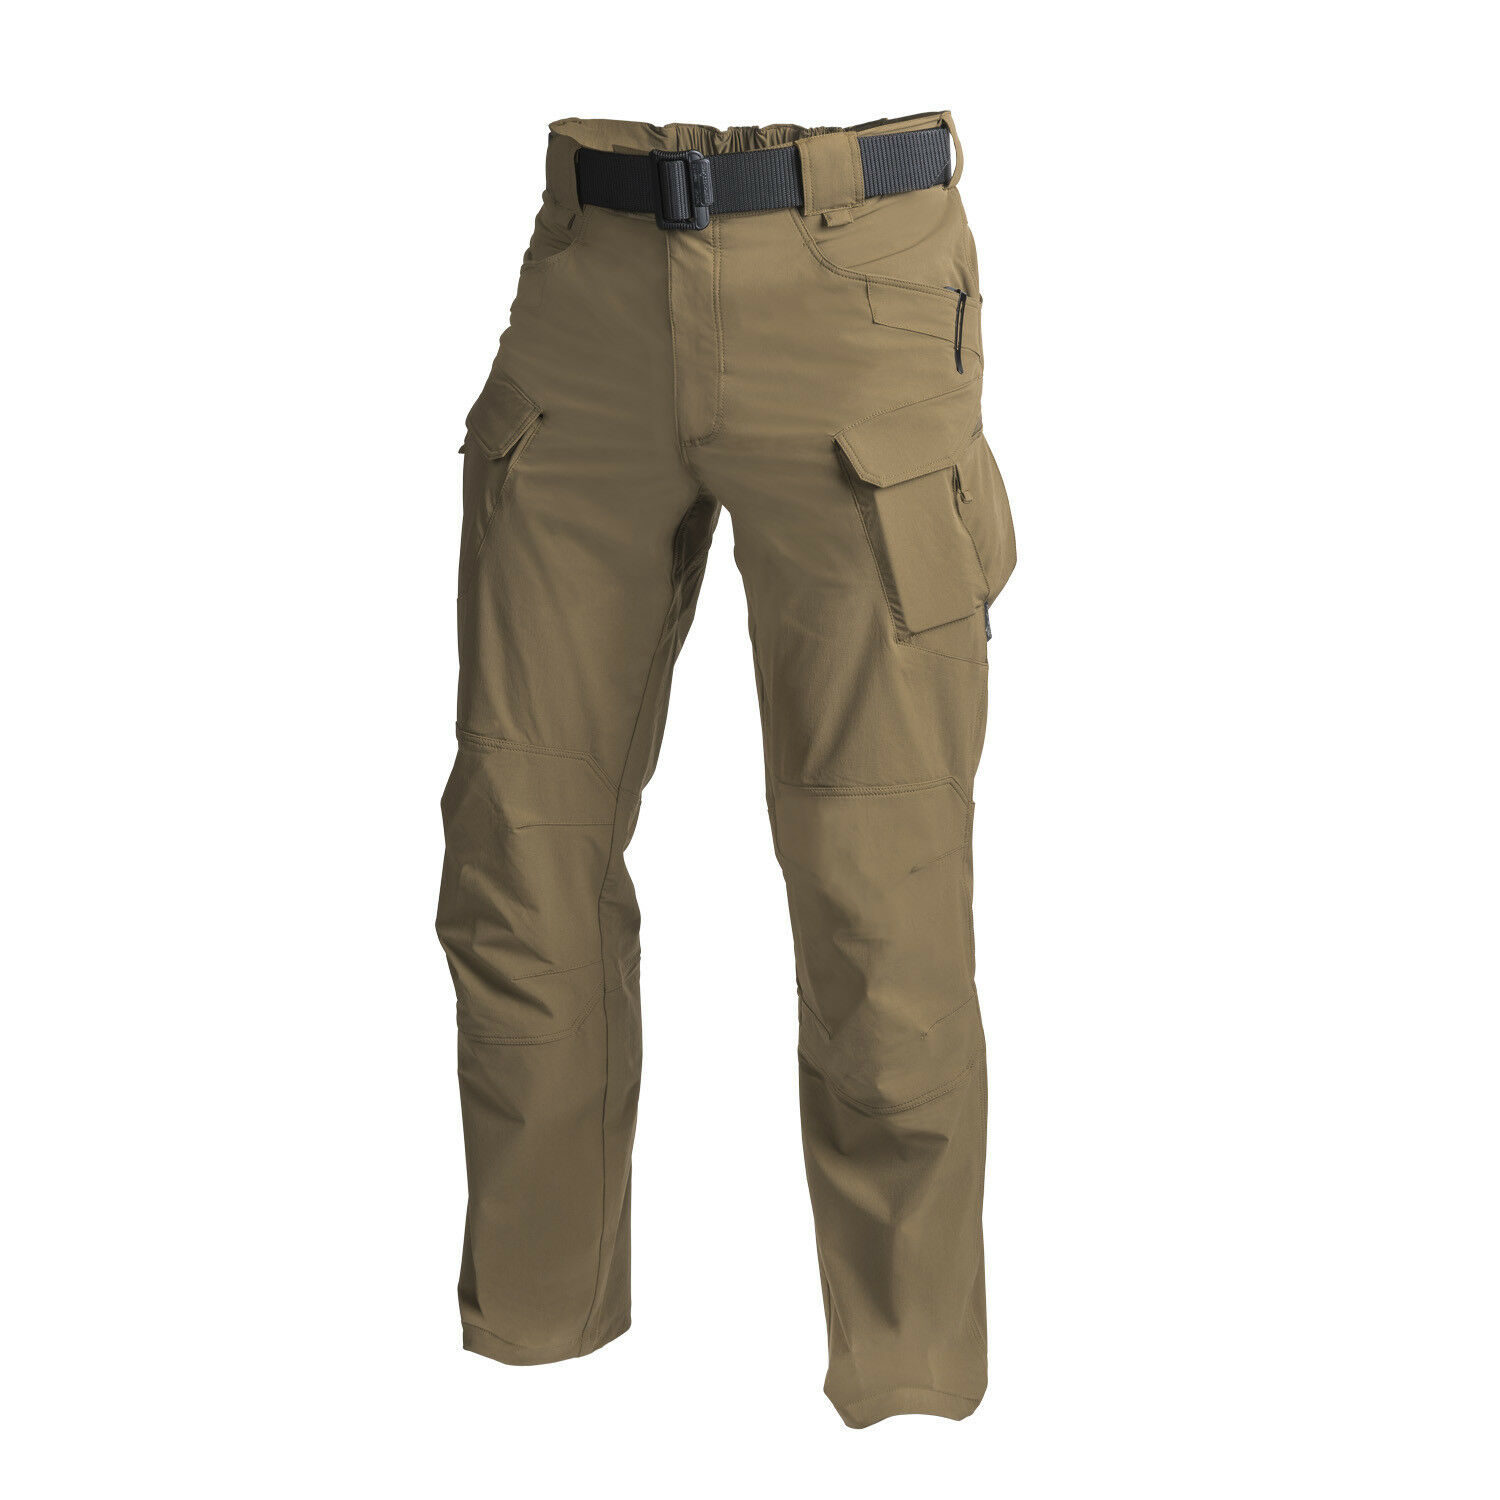 HELIKON TEX OTP OUTDOOR OUTDOOR OTP Trekking Walking Freizeit Hose MUD braun Medium Regular 38c5b1